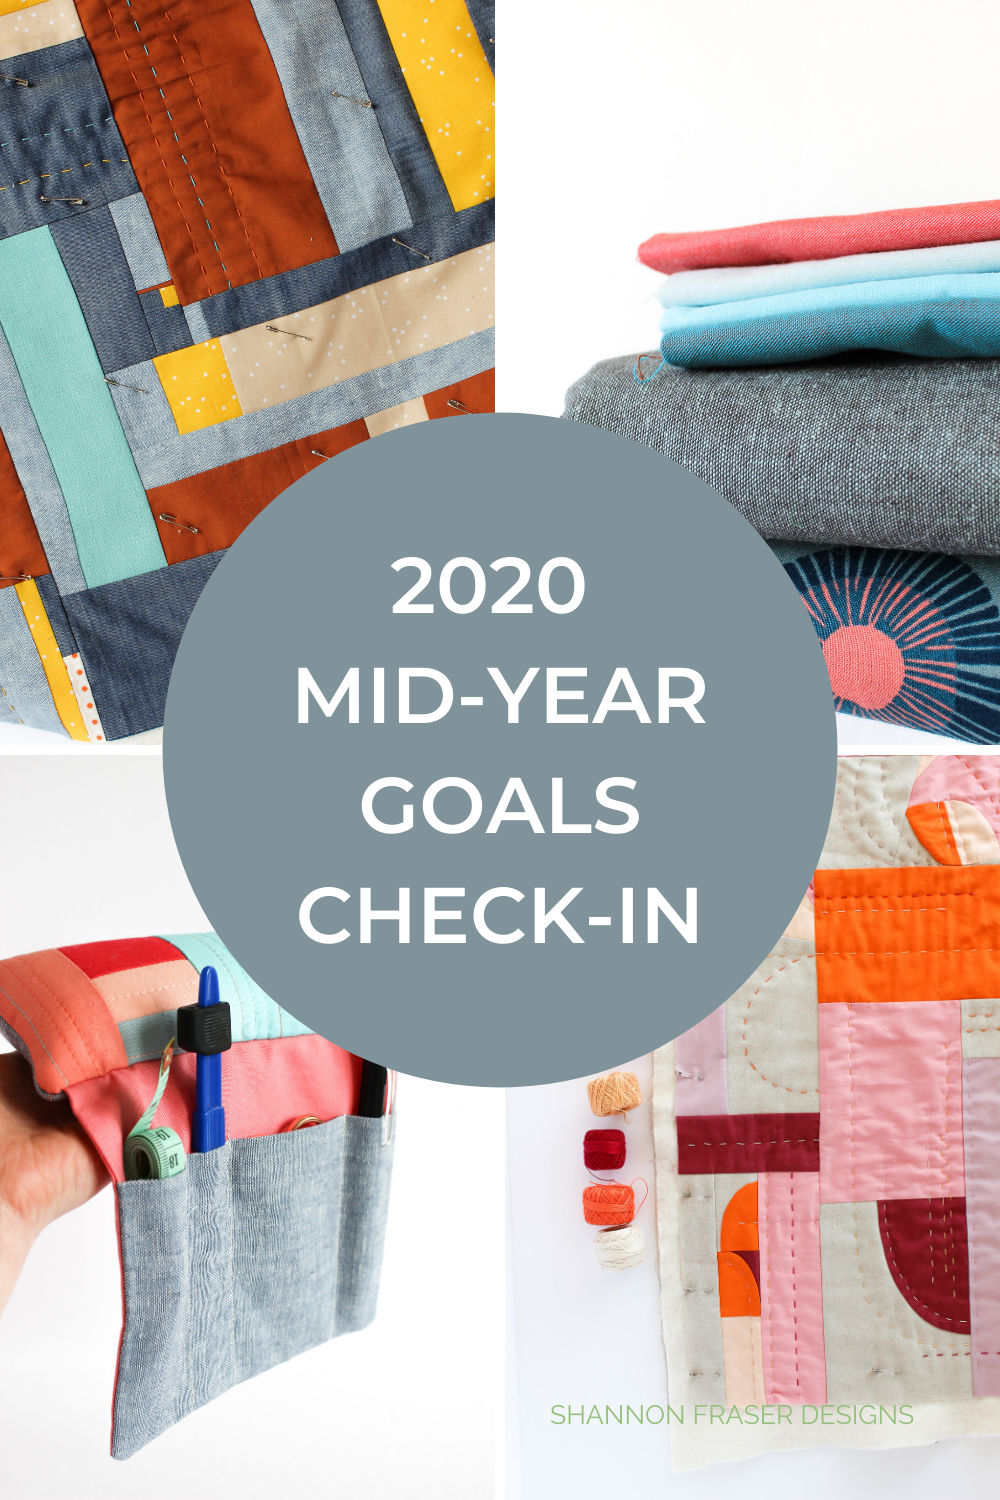 Round-up of modern improv quilt projects + DIY pincushion | 2020 mid-year goals check-in | Shannon Fraser Designs #modernquilts